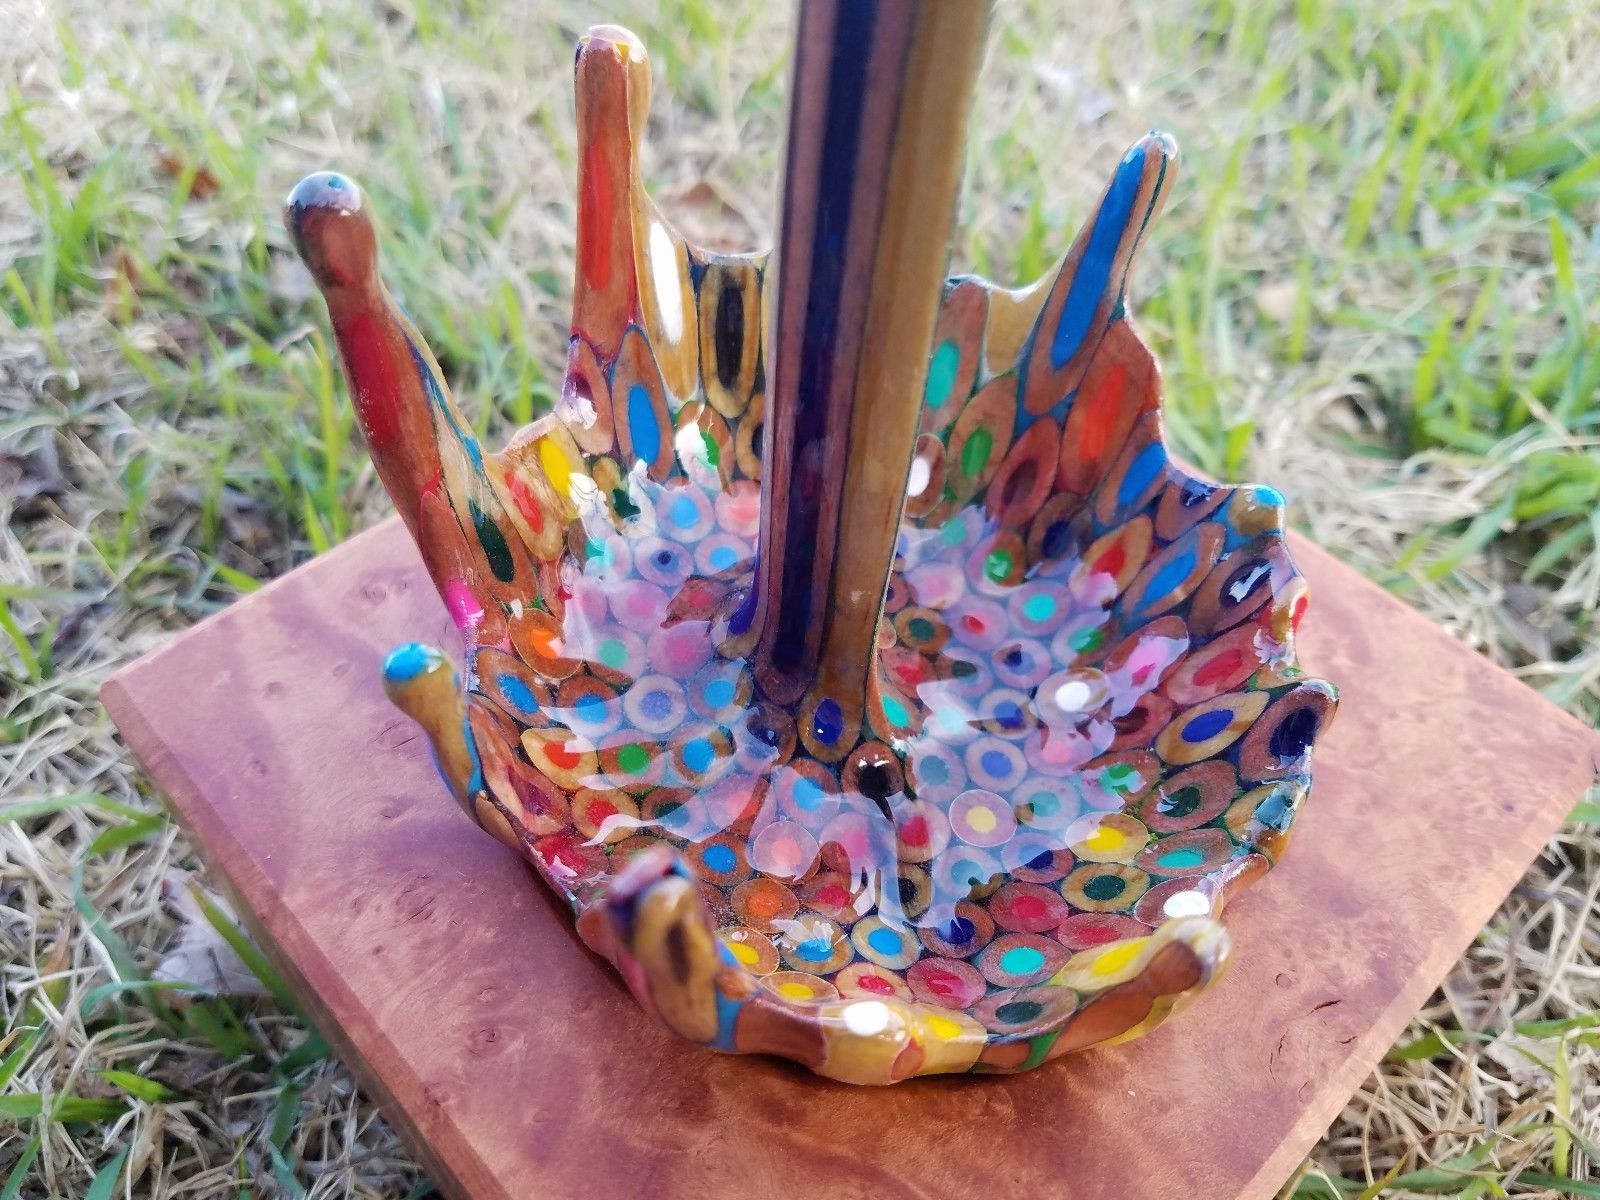 A Floating Coffee Cup Pours a Rainbow of Liquid Pencils